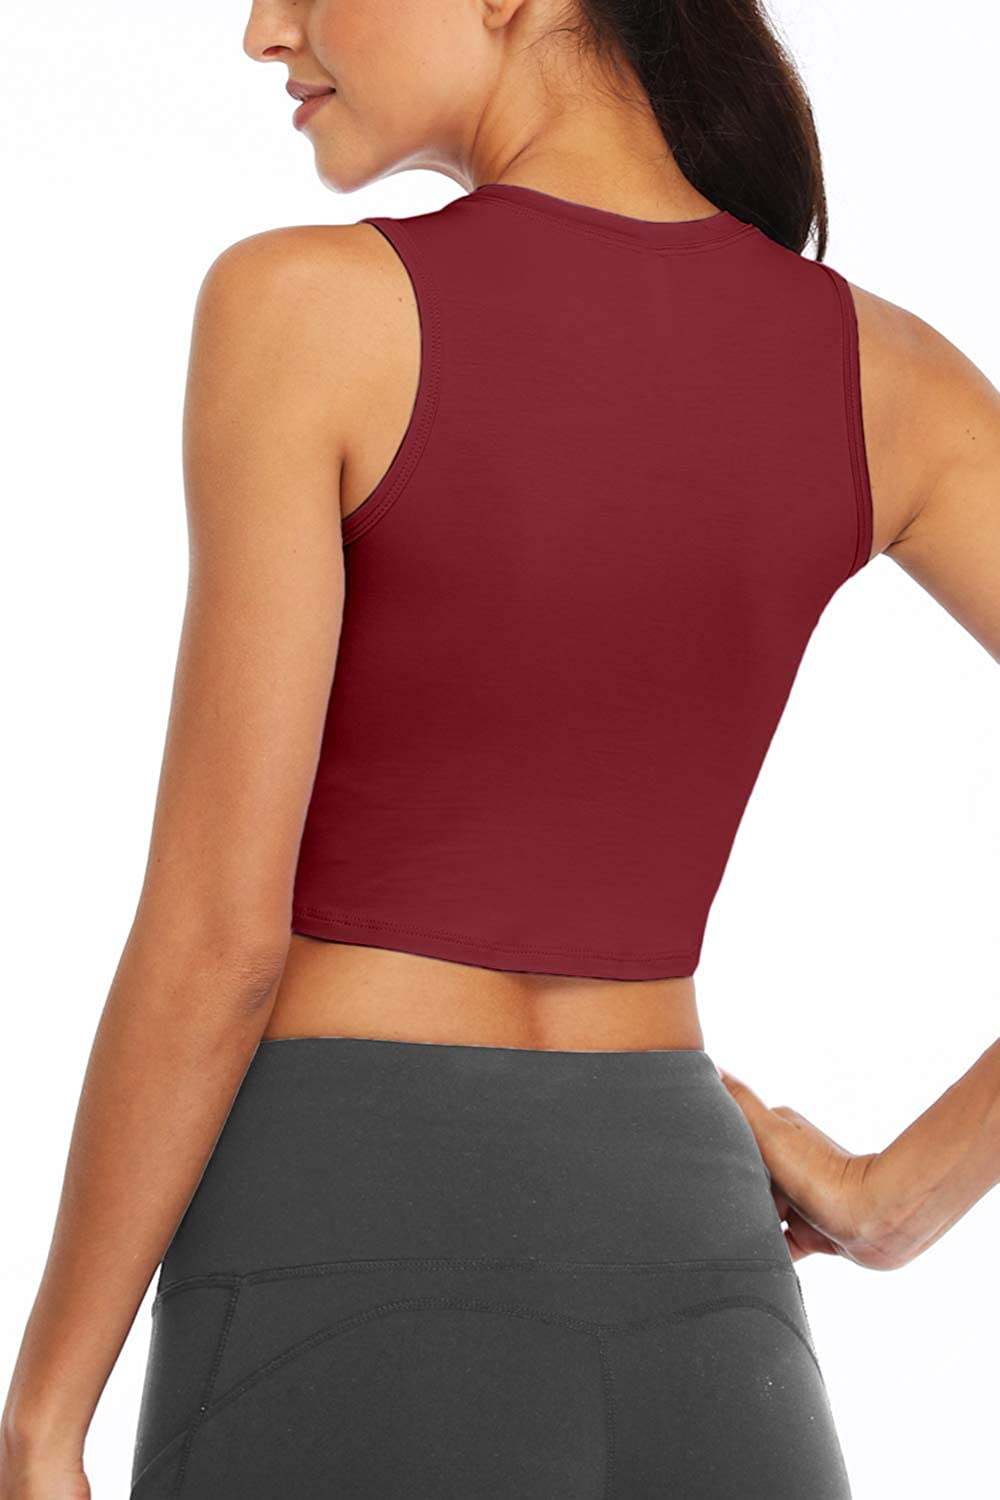 Sanutch Workout Crop Tops for Women Slim fit Yoga Dance Tops Cropped Muscle Tank